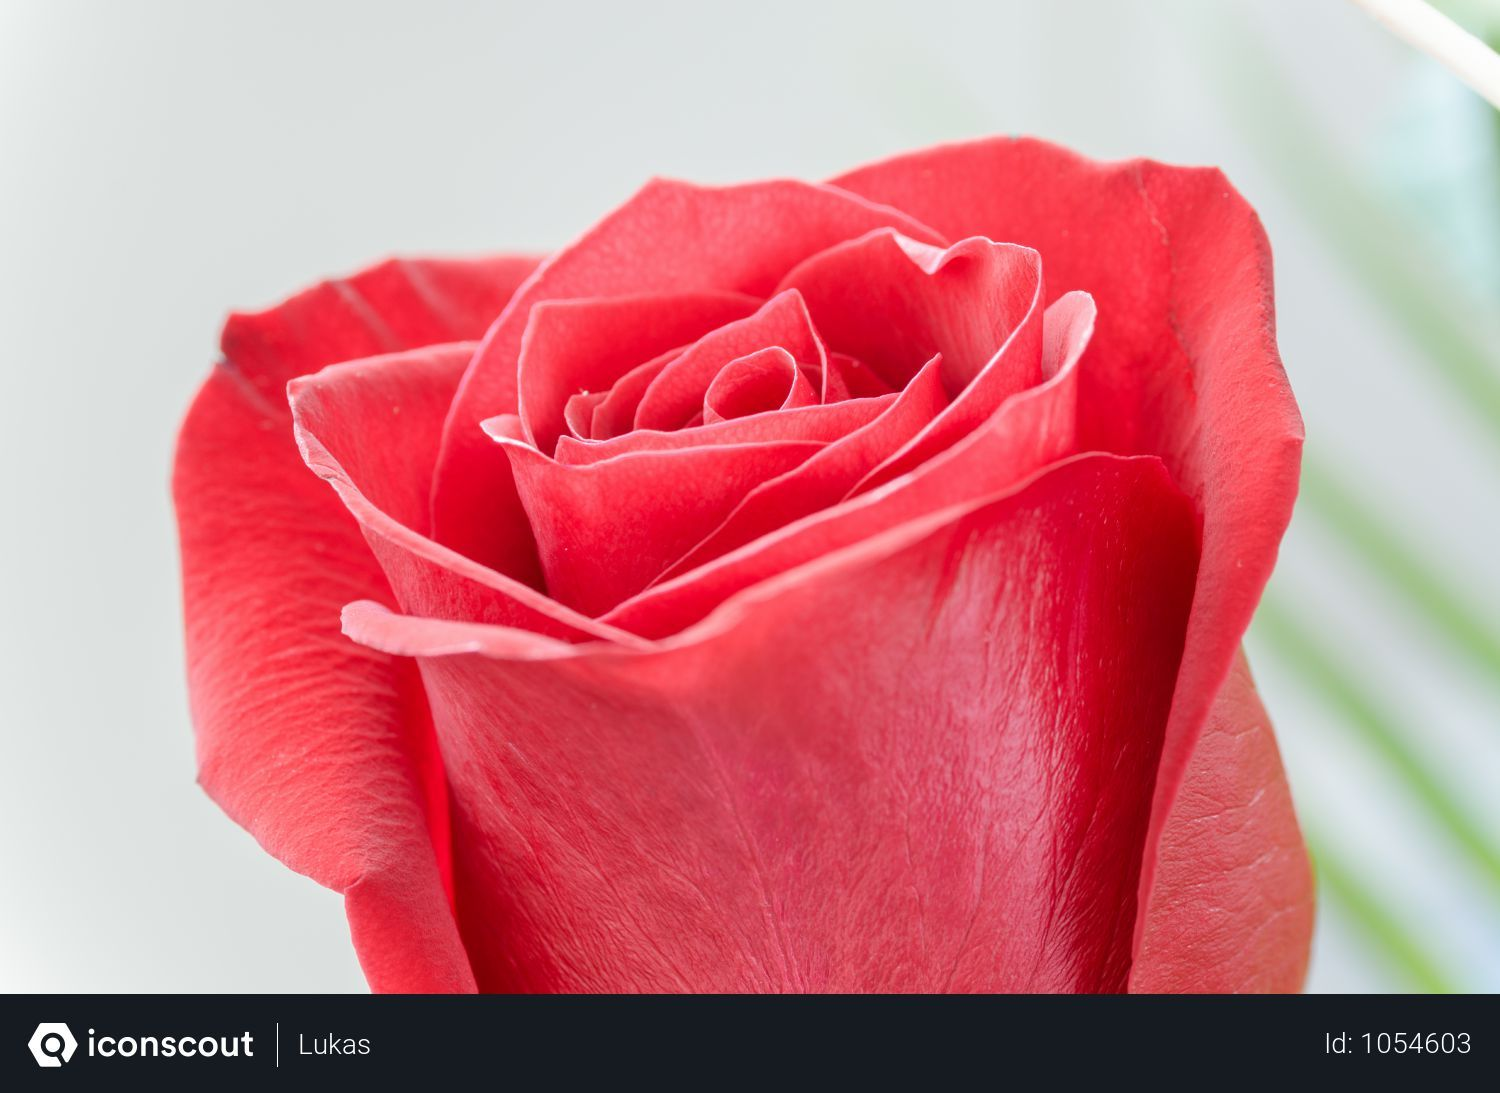 Free Red Rose Photo Download In Png Jpg Format Purple Flowers Wallpaper Rose Photos Rose Buds